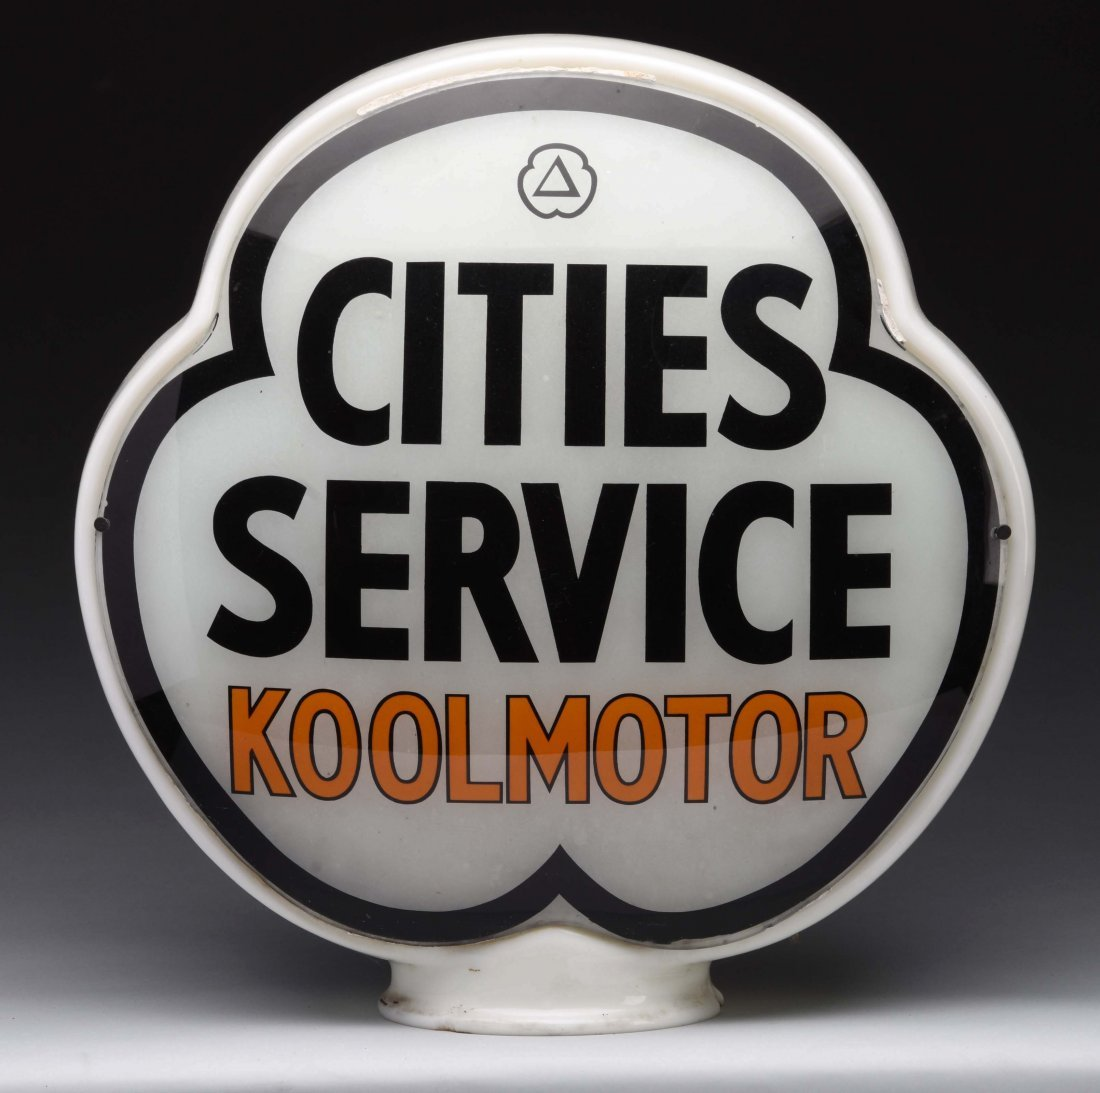 Cities Service Koolmotor Clover Globe Lenses. - 2